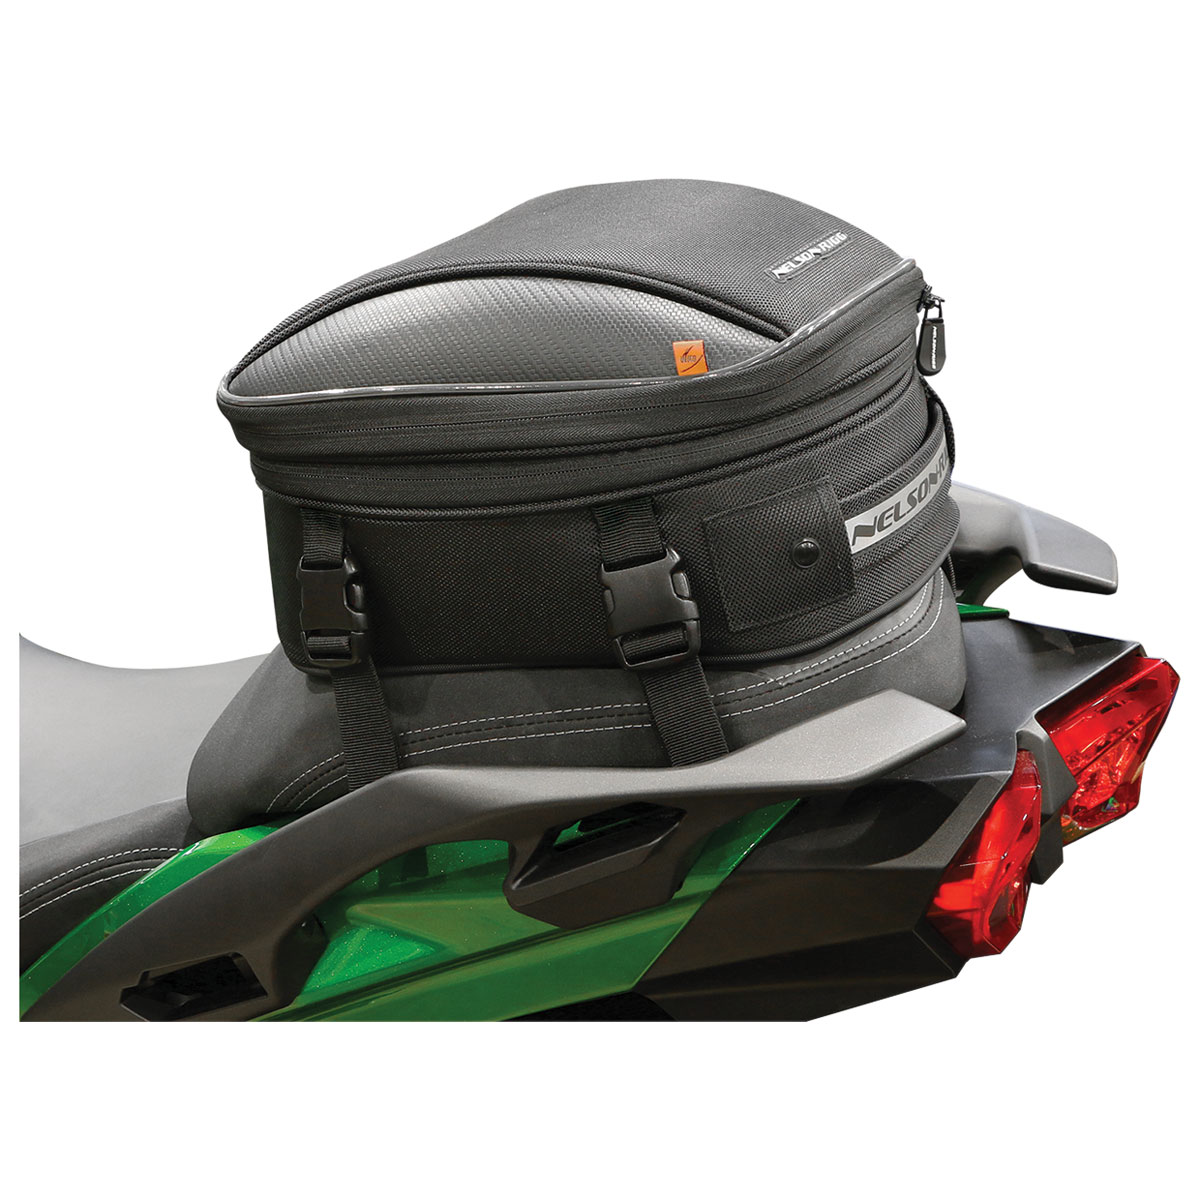 Nelson-Rigg Commuter Lite Tail Bag